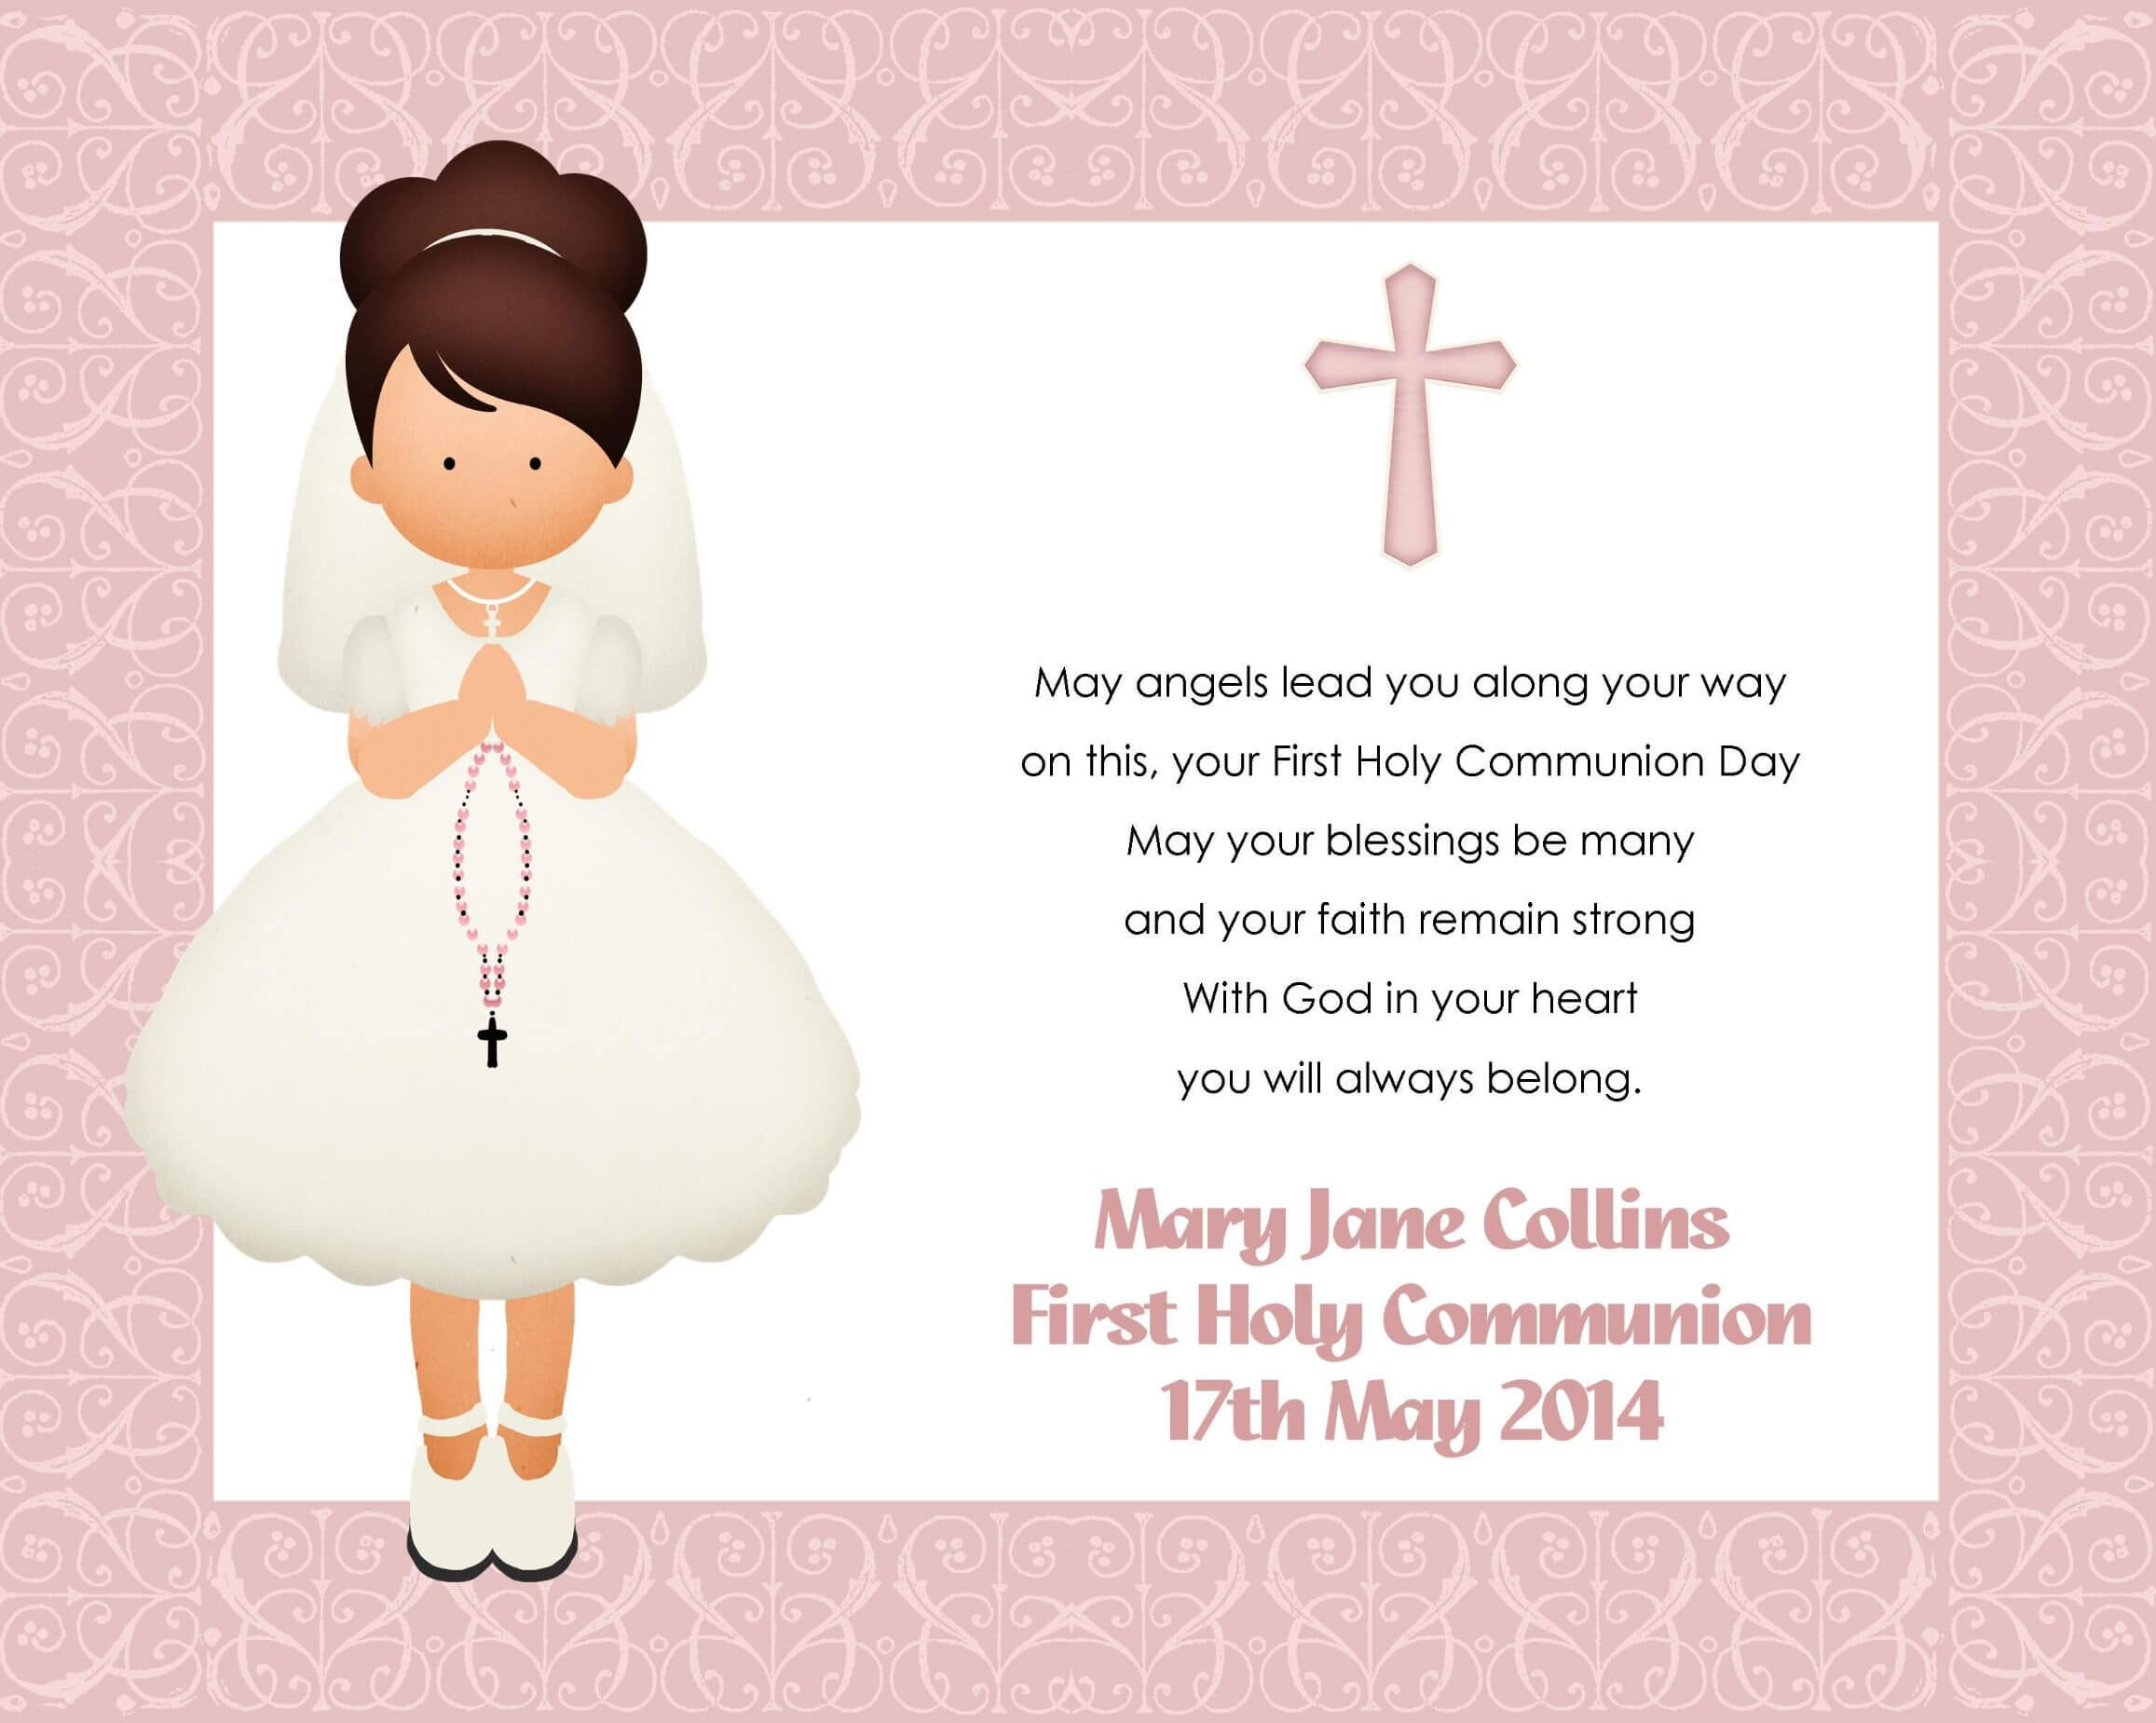 First Holy Communion Cards Printable Free That Are With Regard To Free Printable First Communion Banner Templates